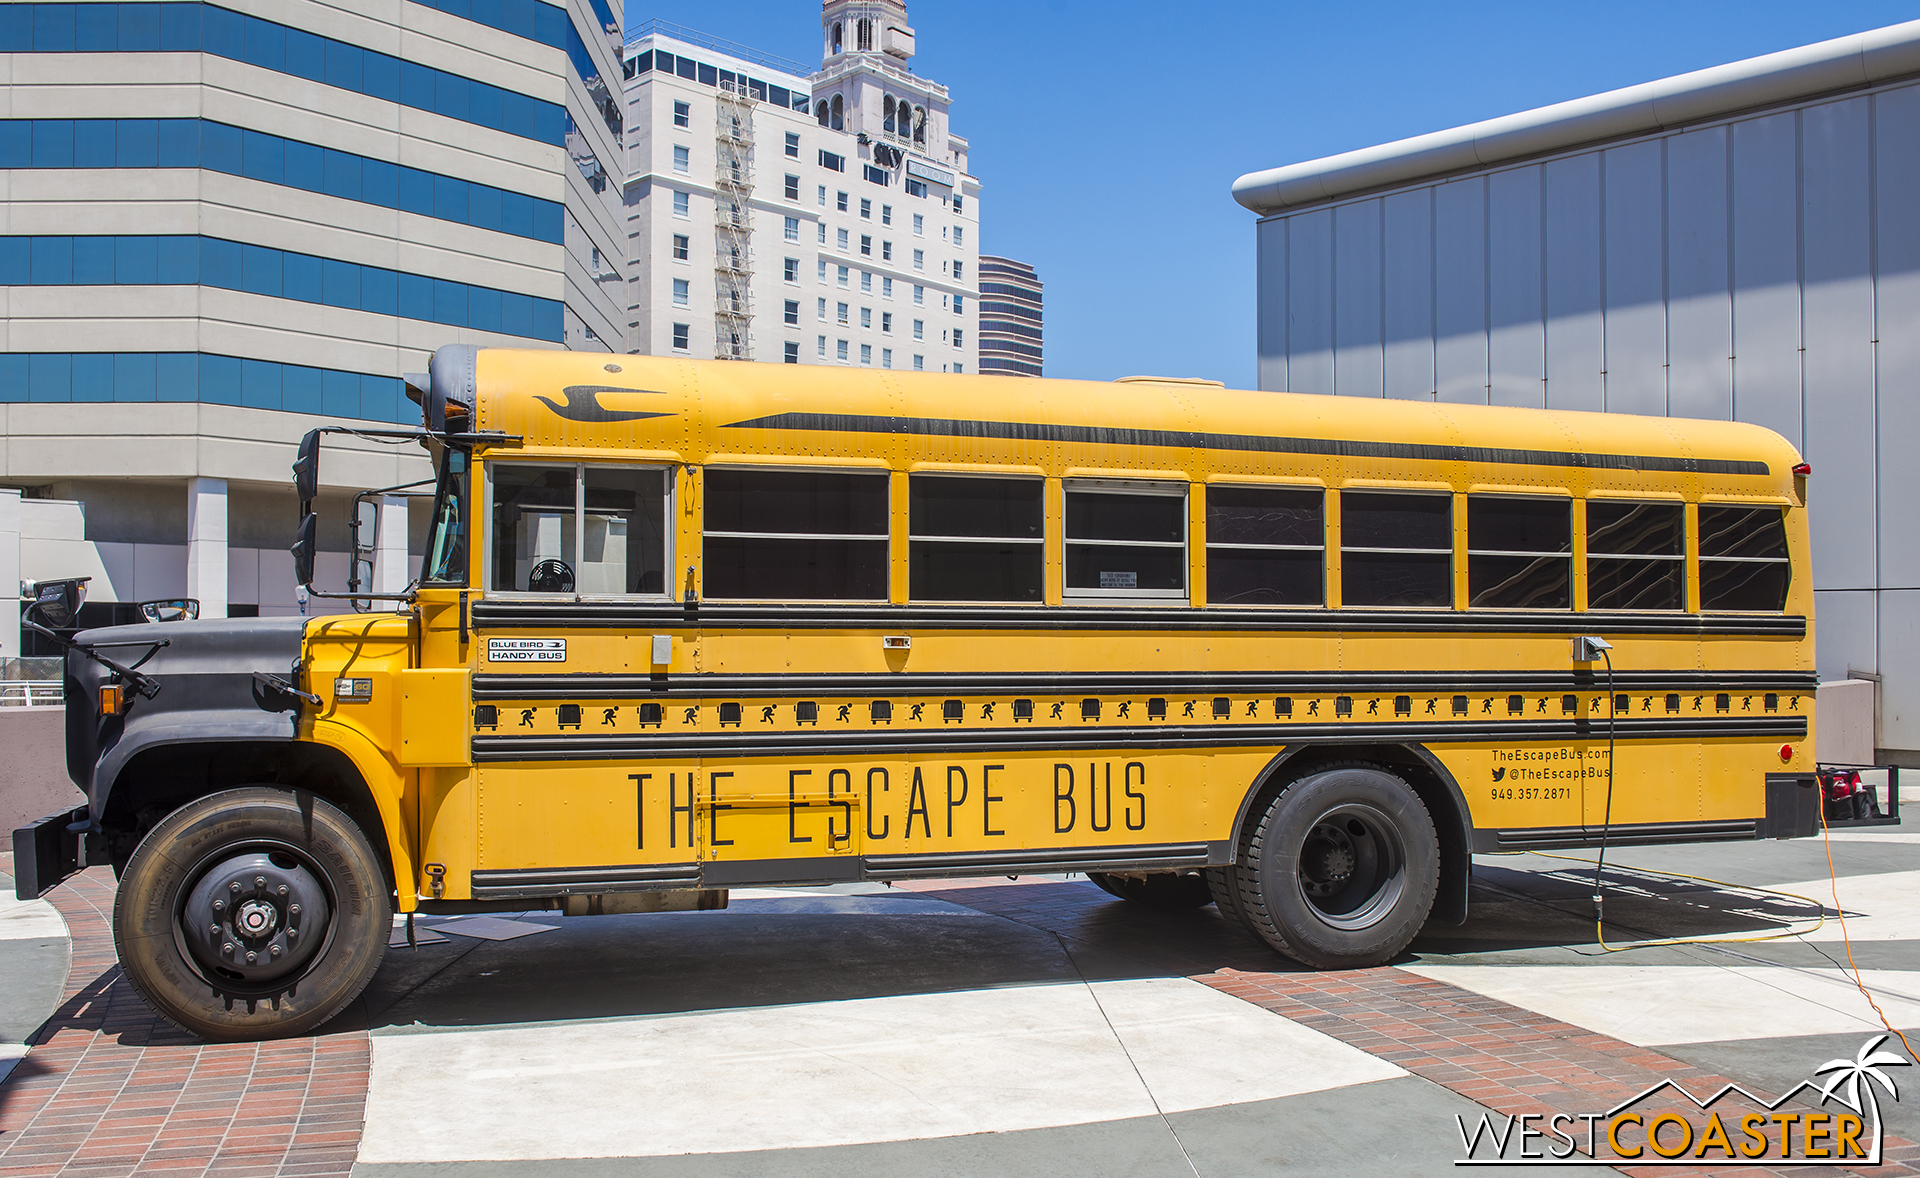 Just outside the convention center building, guests could also try their hand at an escape room bus!